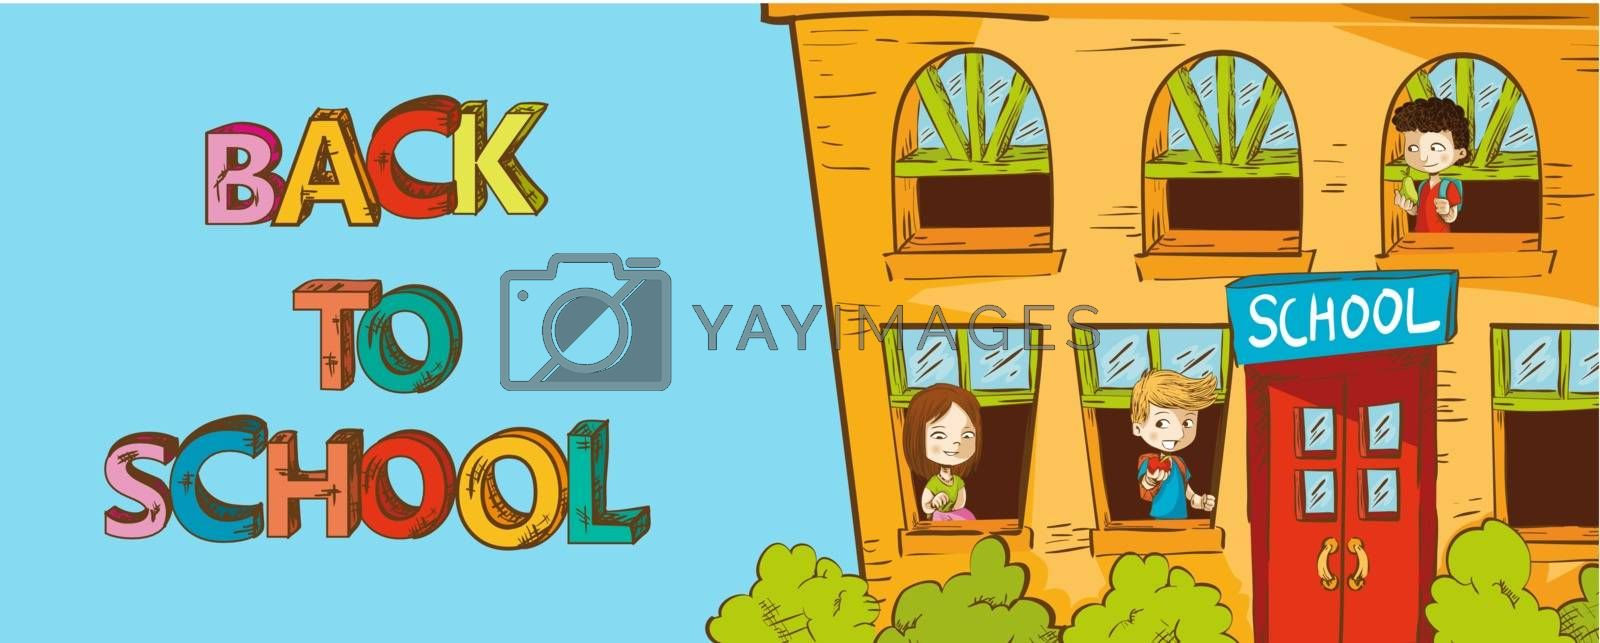 Back to School education School house with kids inside cartoon illustration. Vector layered for easy personalization